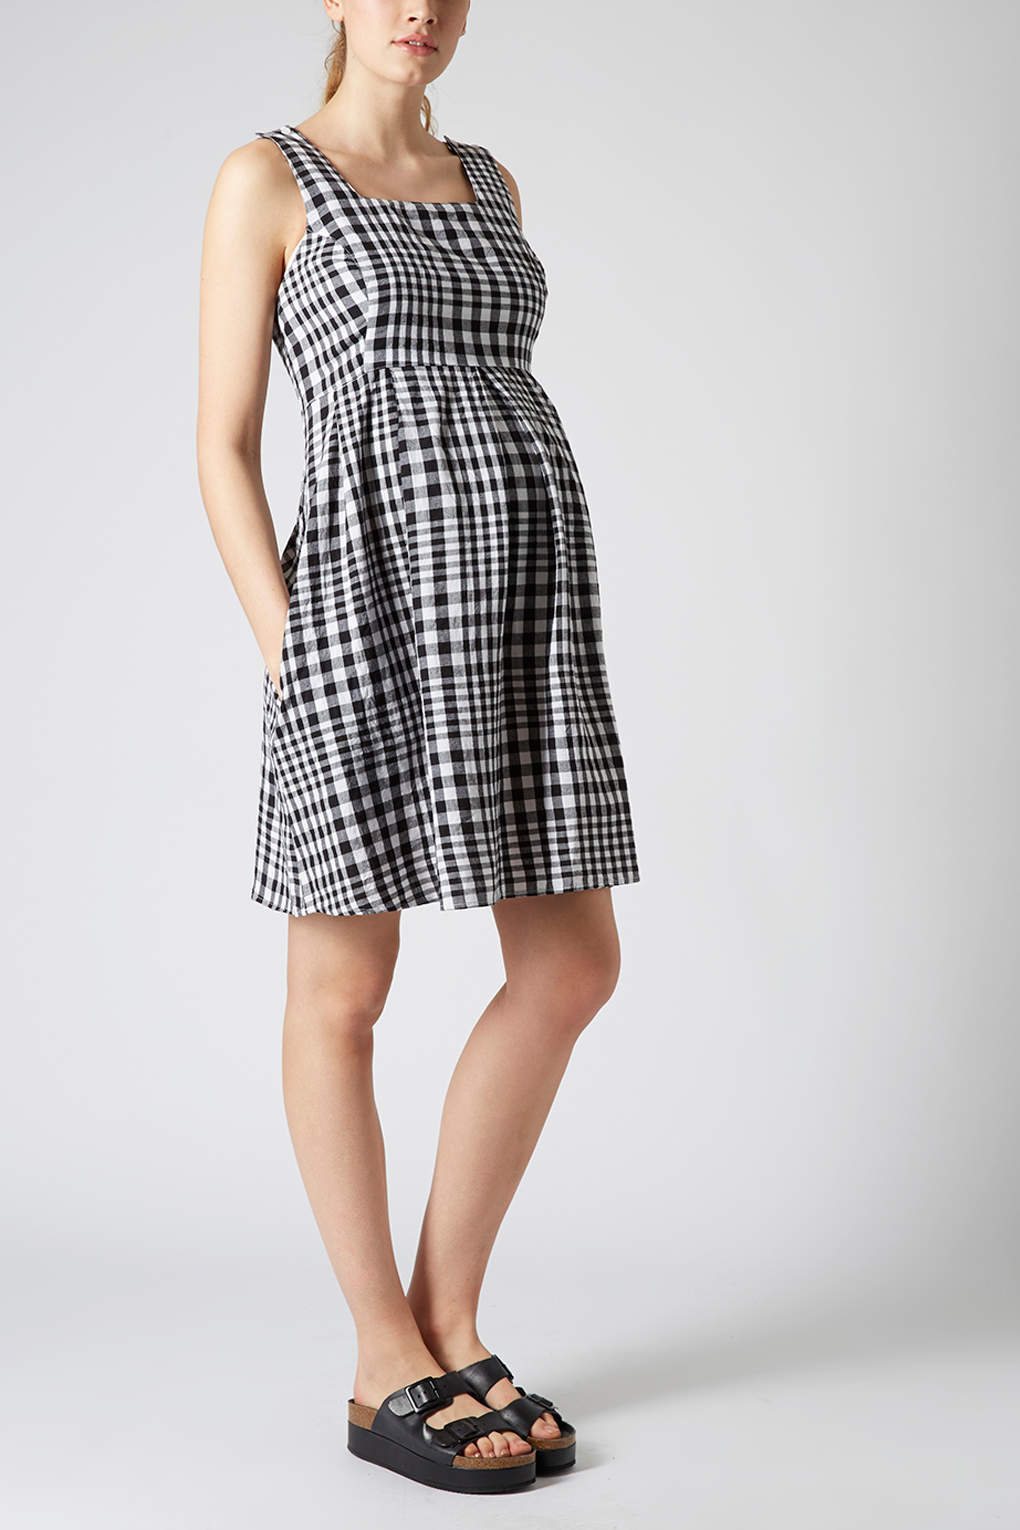 Topshop maternity gingham check smock dress in gray lyst gallery ombrellifo Image collections